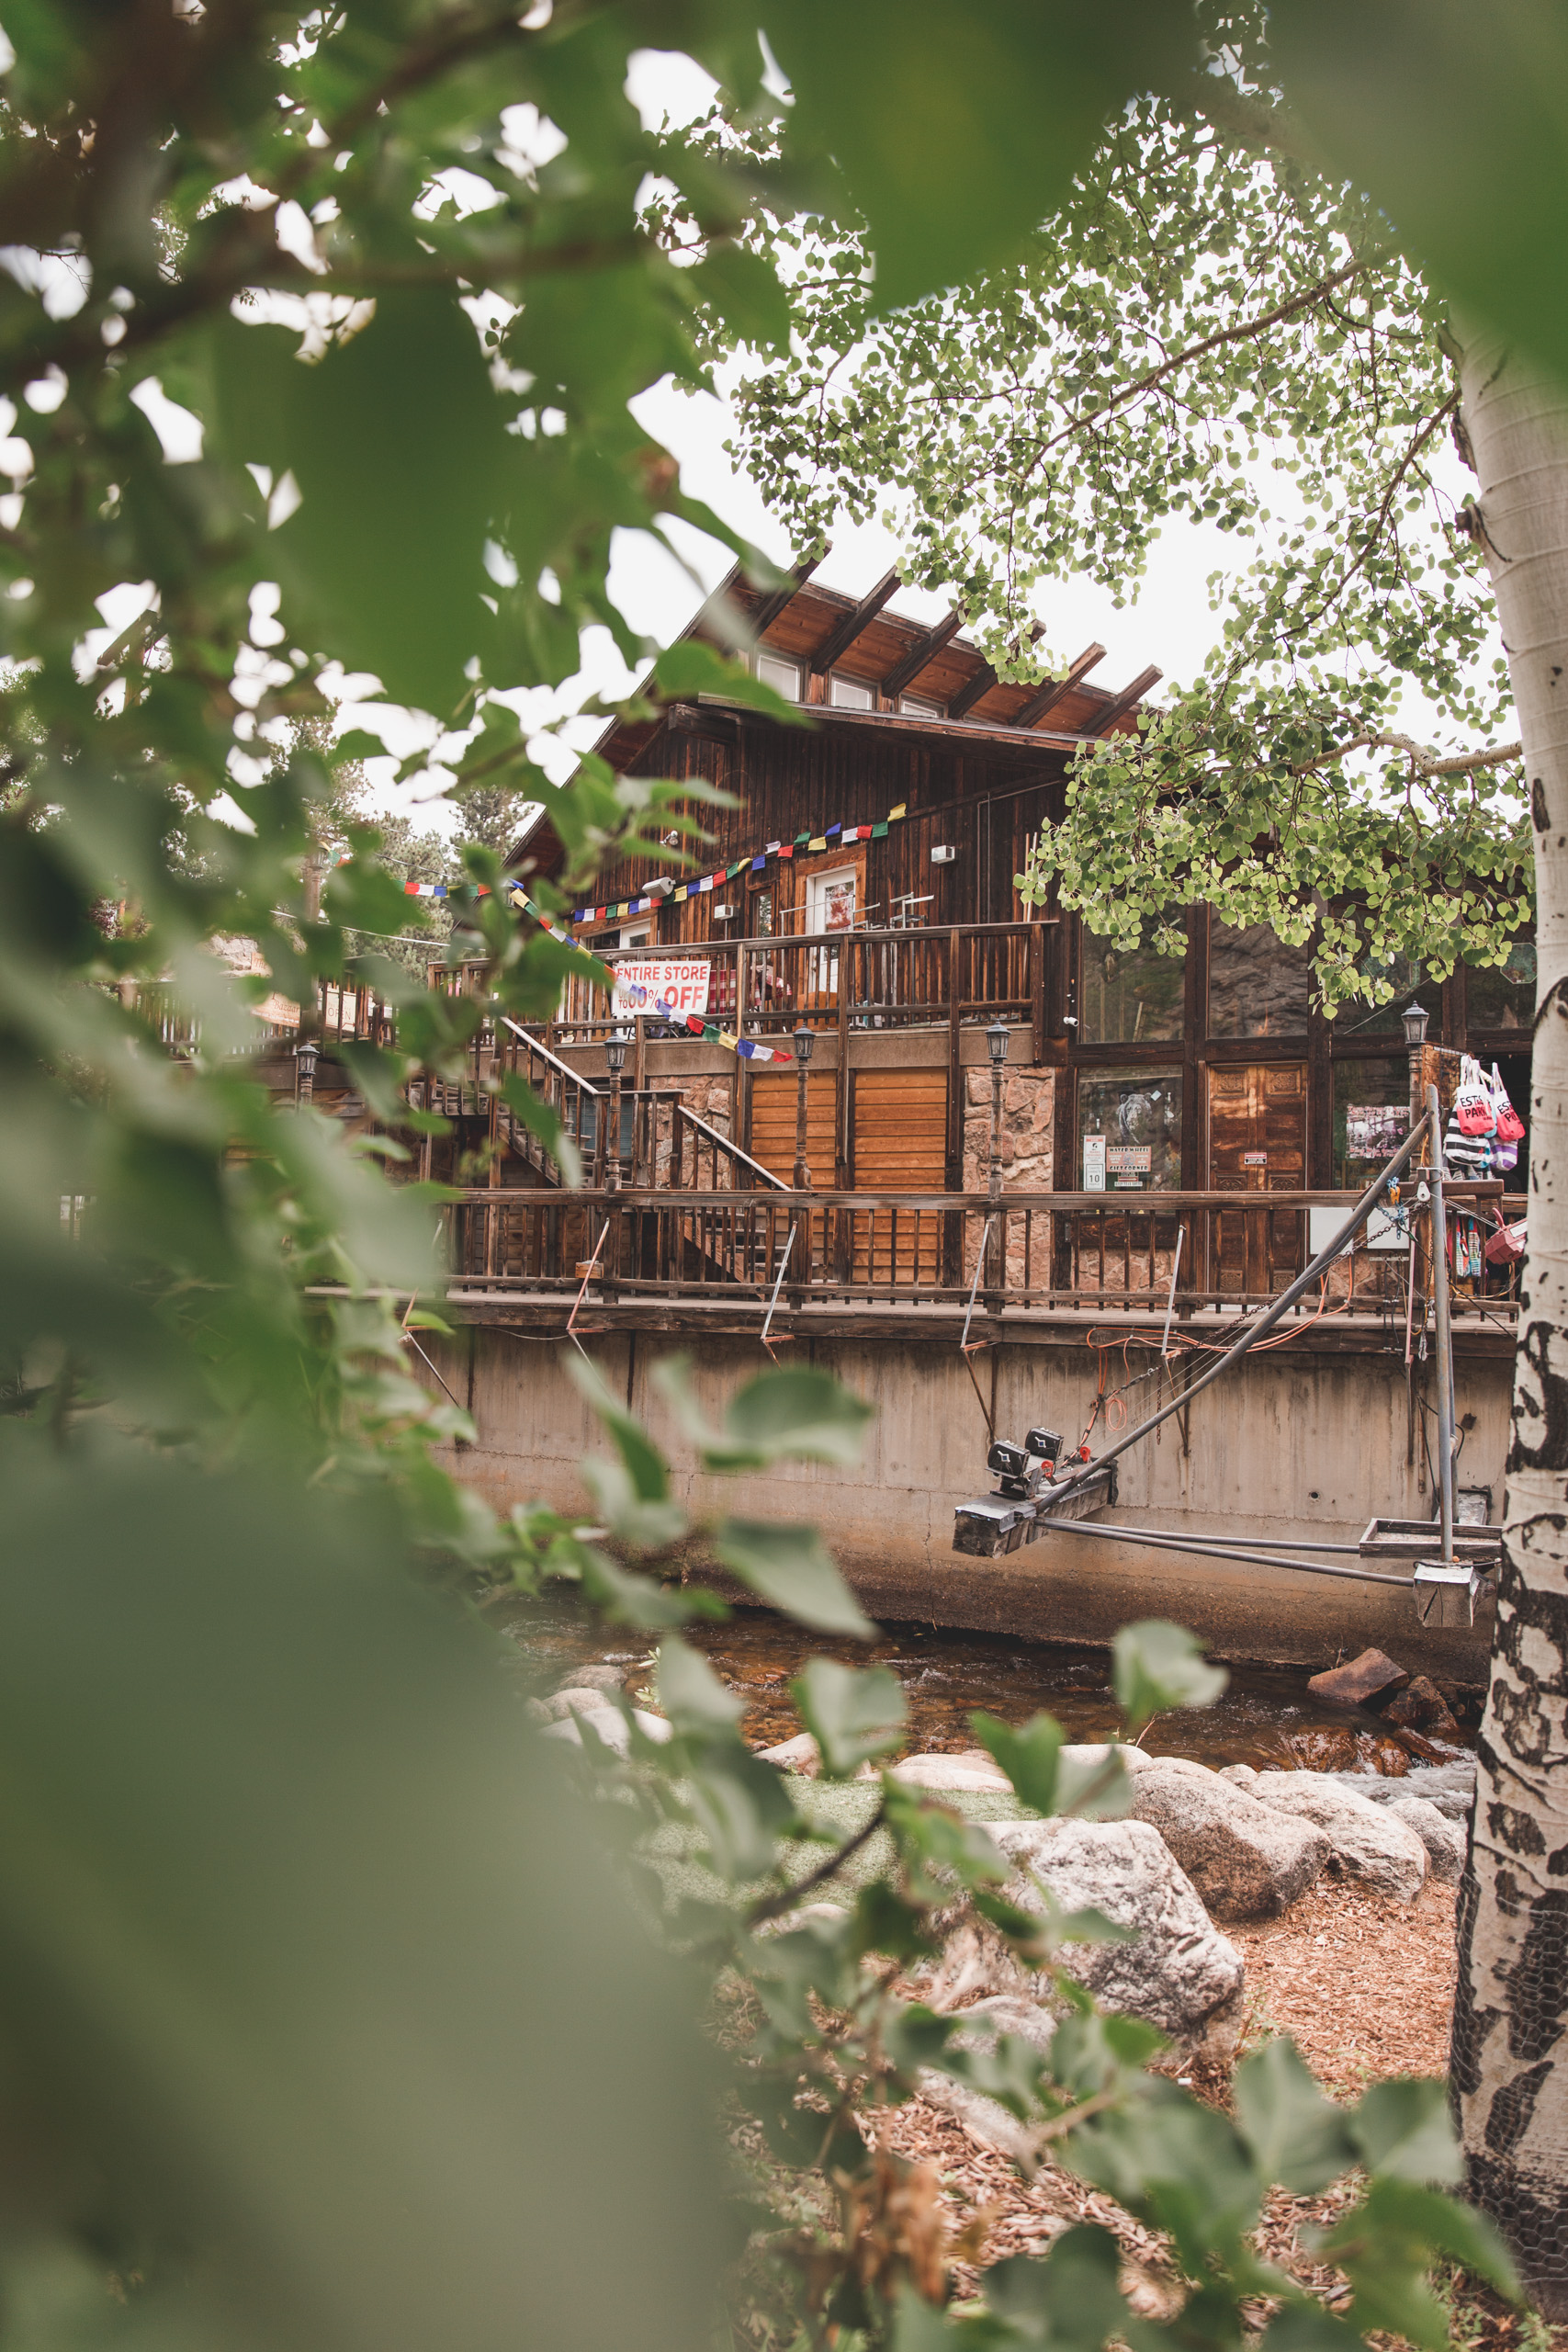 Wooden store with leaves in the foreground in Estes Park, Colorado